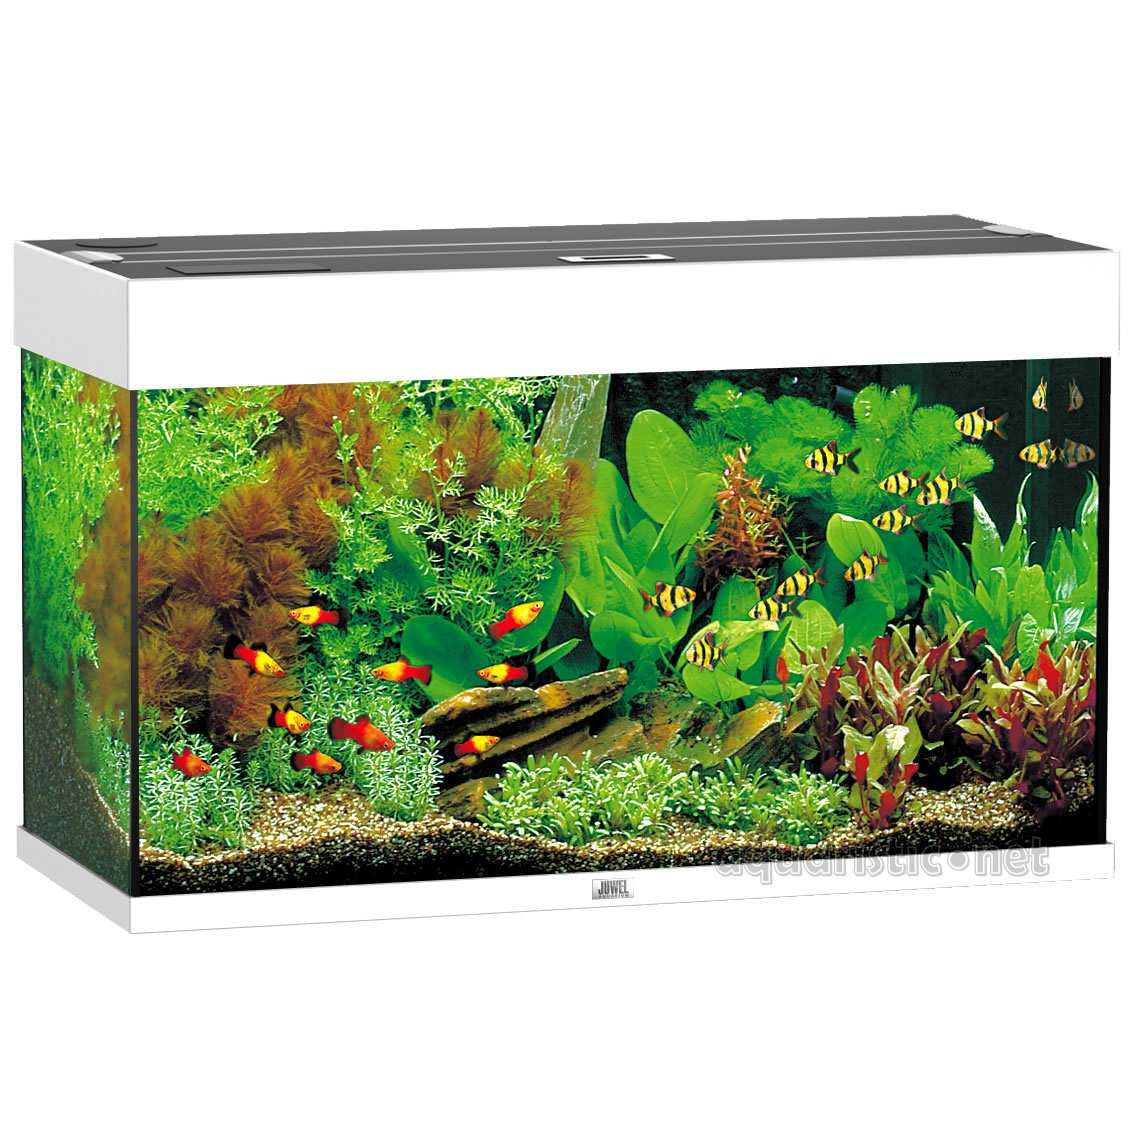 eck aquarium komplettset pw58 hitoiro. Black Bedroom Furniture Sets. Home Design Ideas